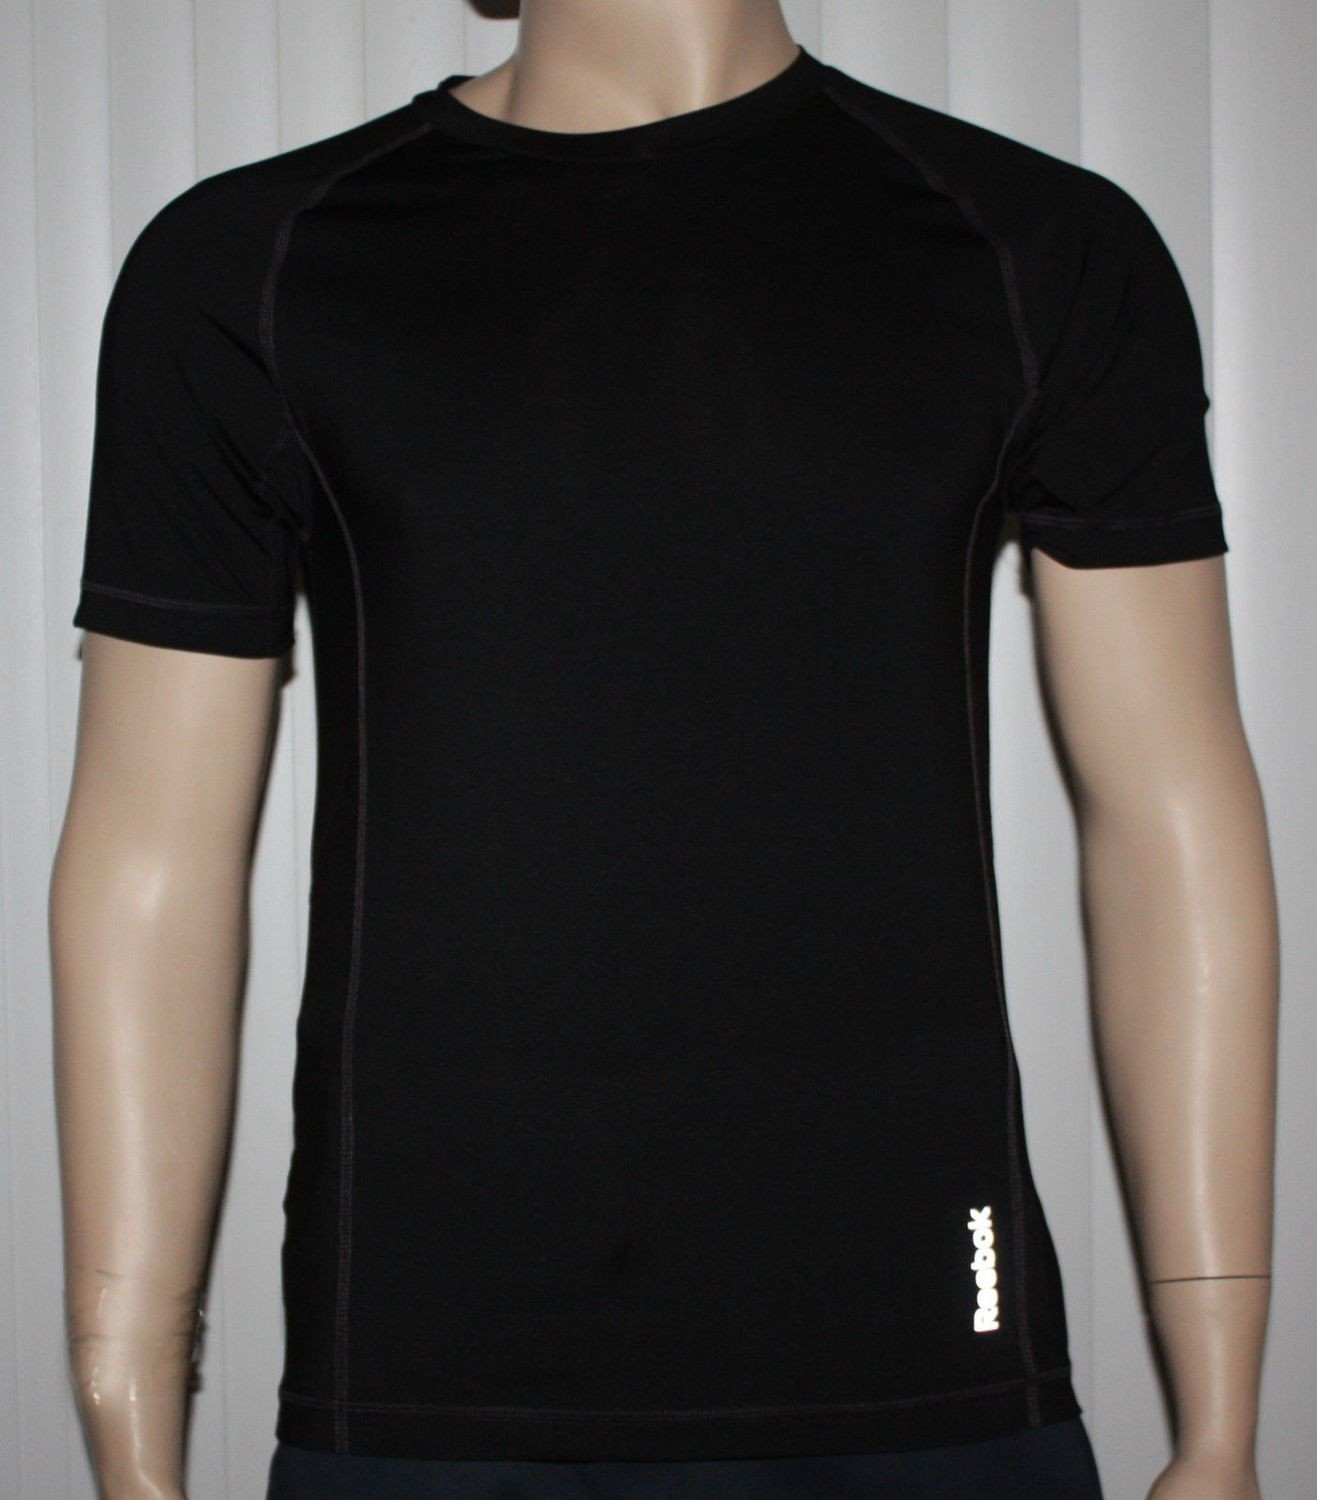 Reebok SPORT Men's Black Compression Shirt Top (Several Sizes)